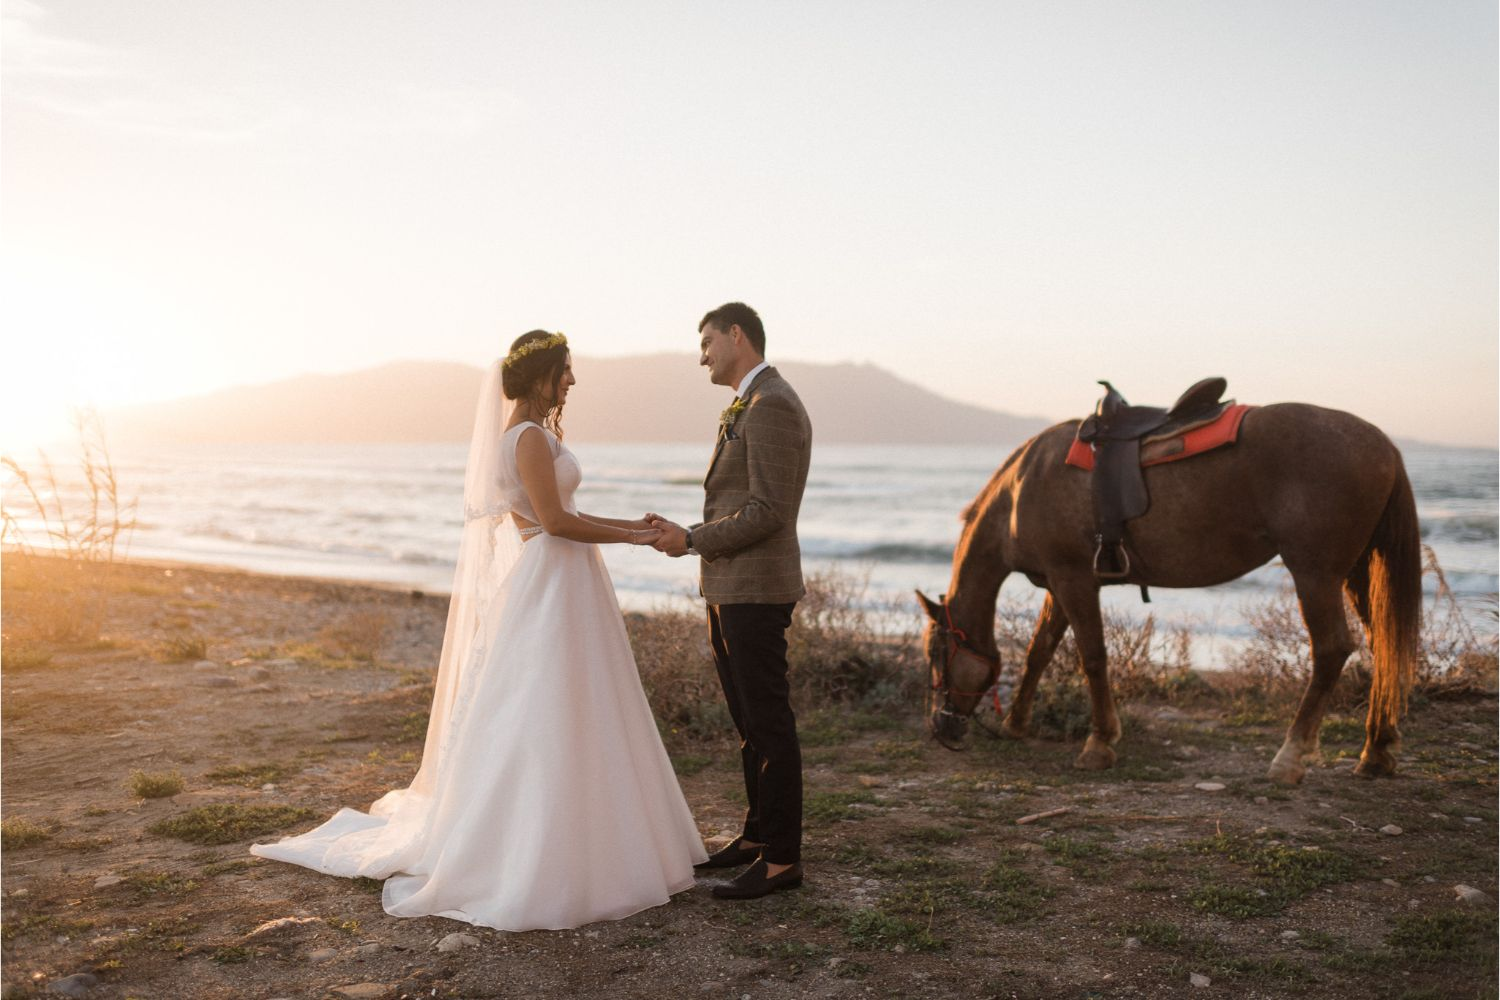 newlyweds photoshoot with horses on the beach